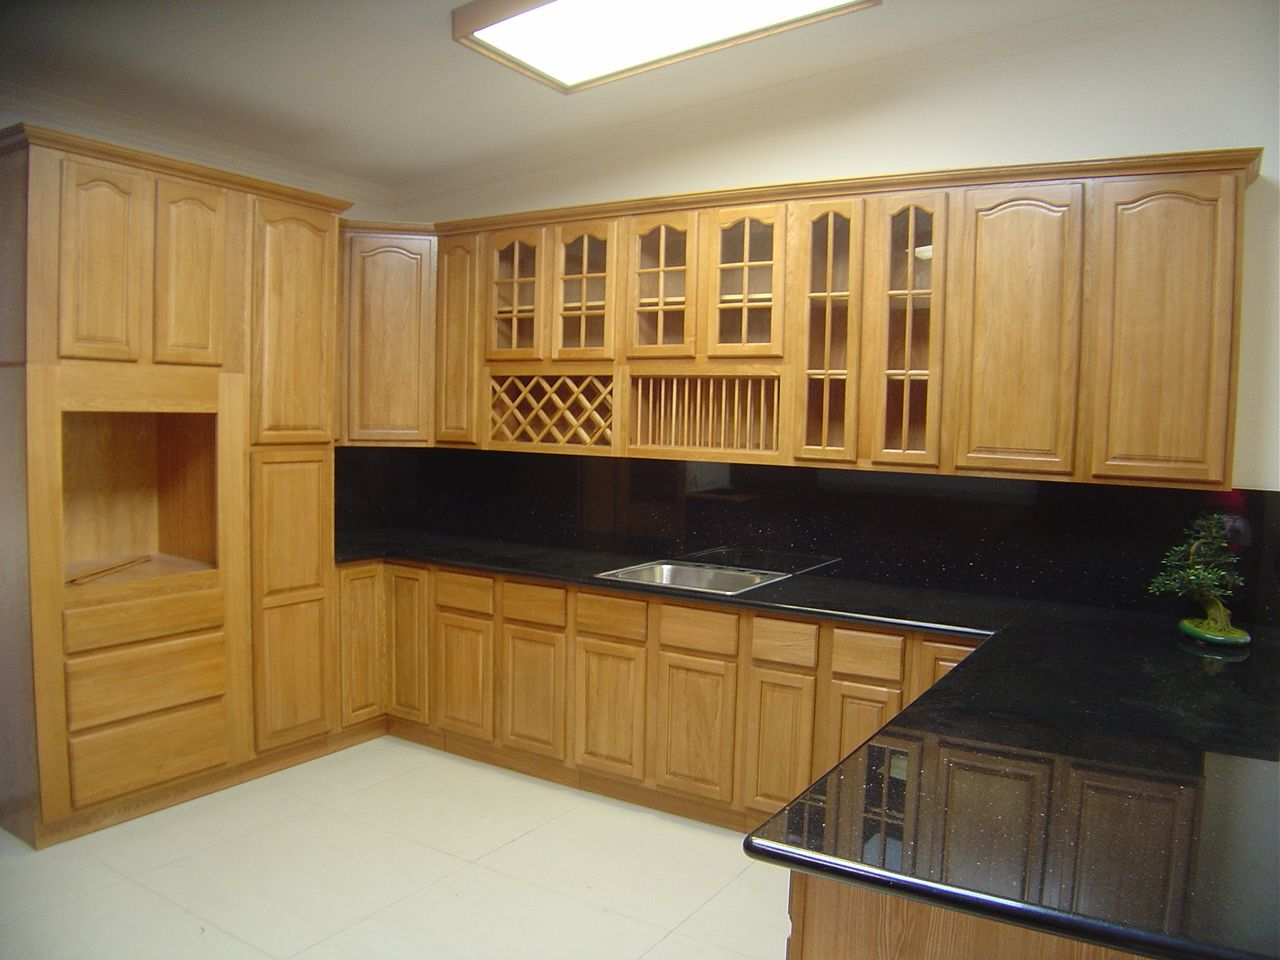 Convenient Kitchens With Kitchen Area Cabinet Pull Out Shelves Read More Here And Choose Simple Kitchen Design Kitchen Cabinet Styles Kitchen Cabinets Pictures